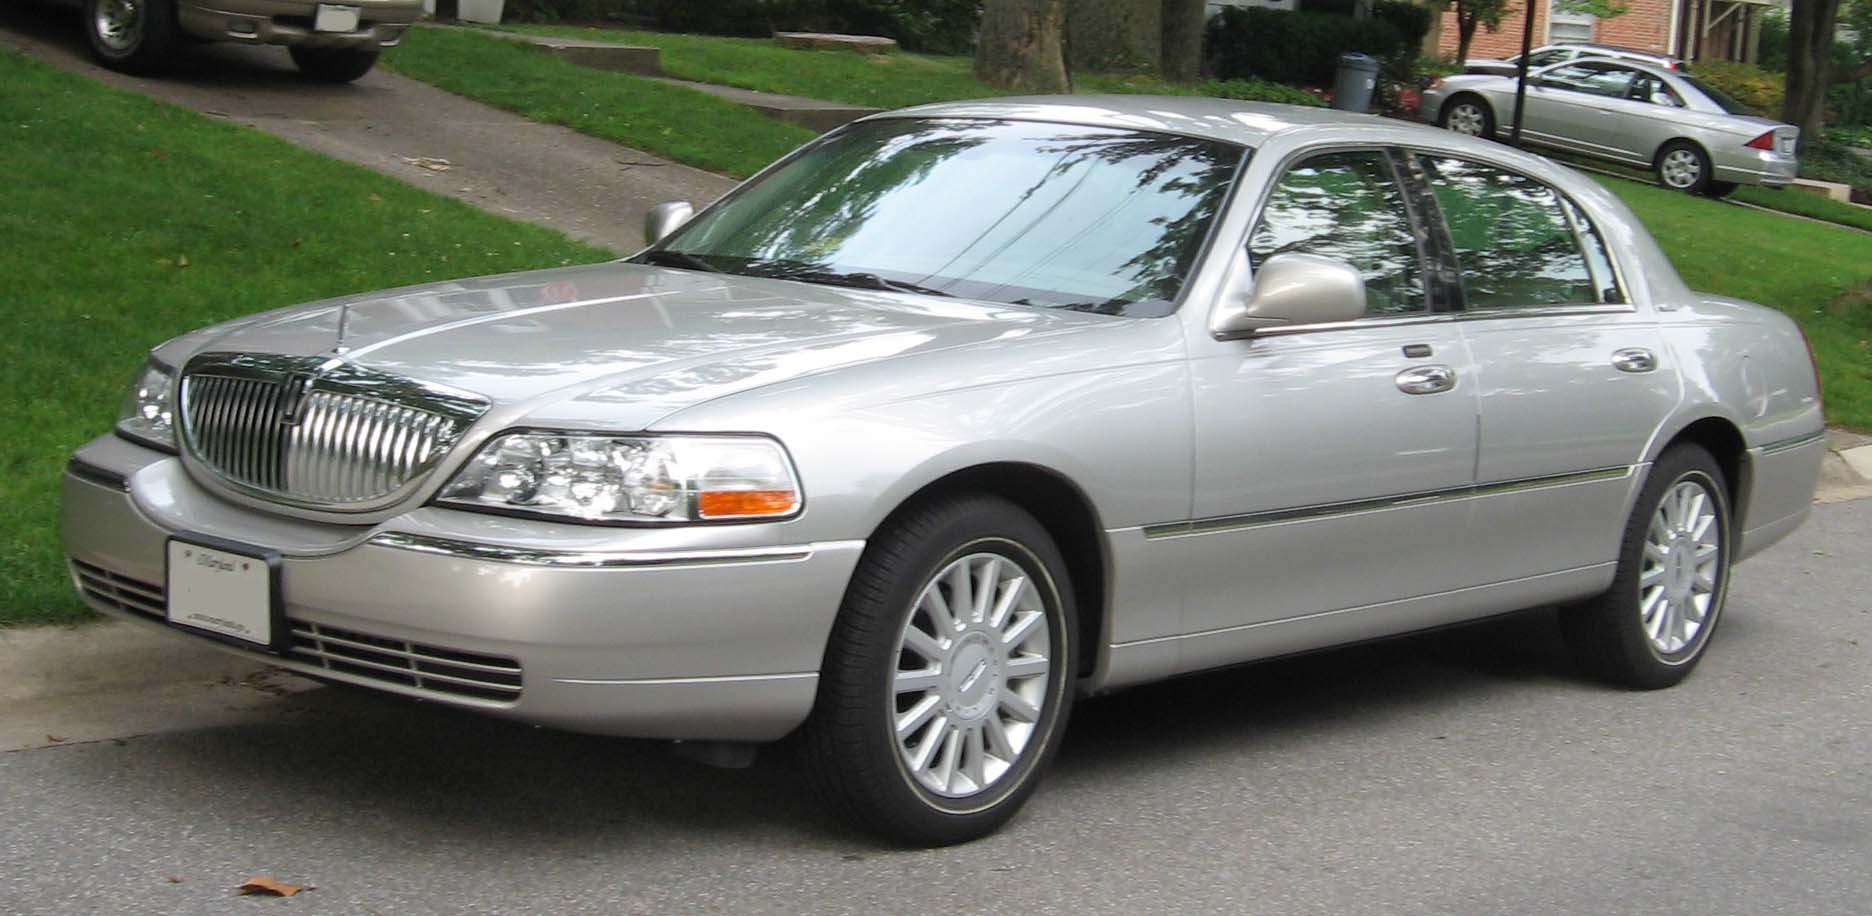 File 03 07 Lincoln Town Car Jpg Wikimedia Commons